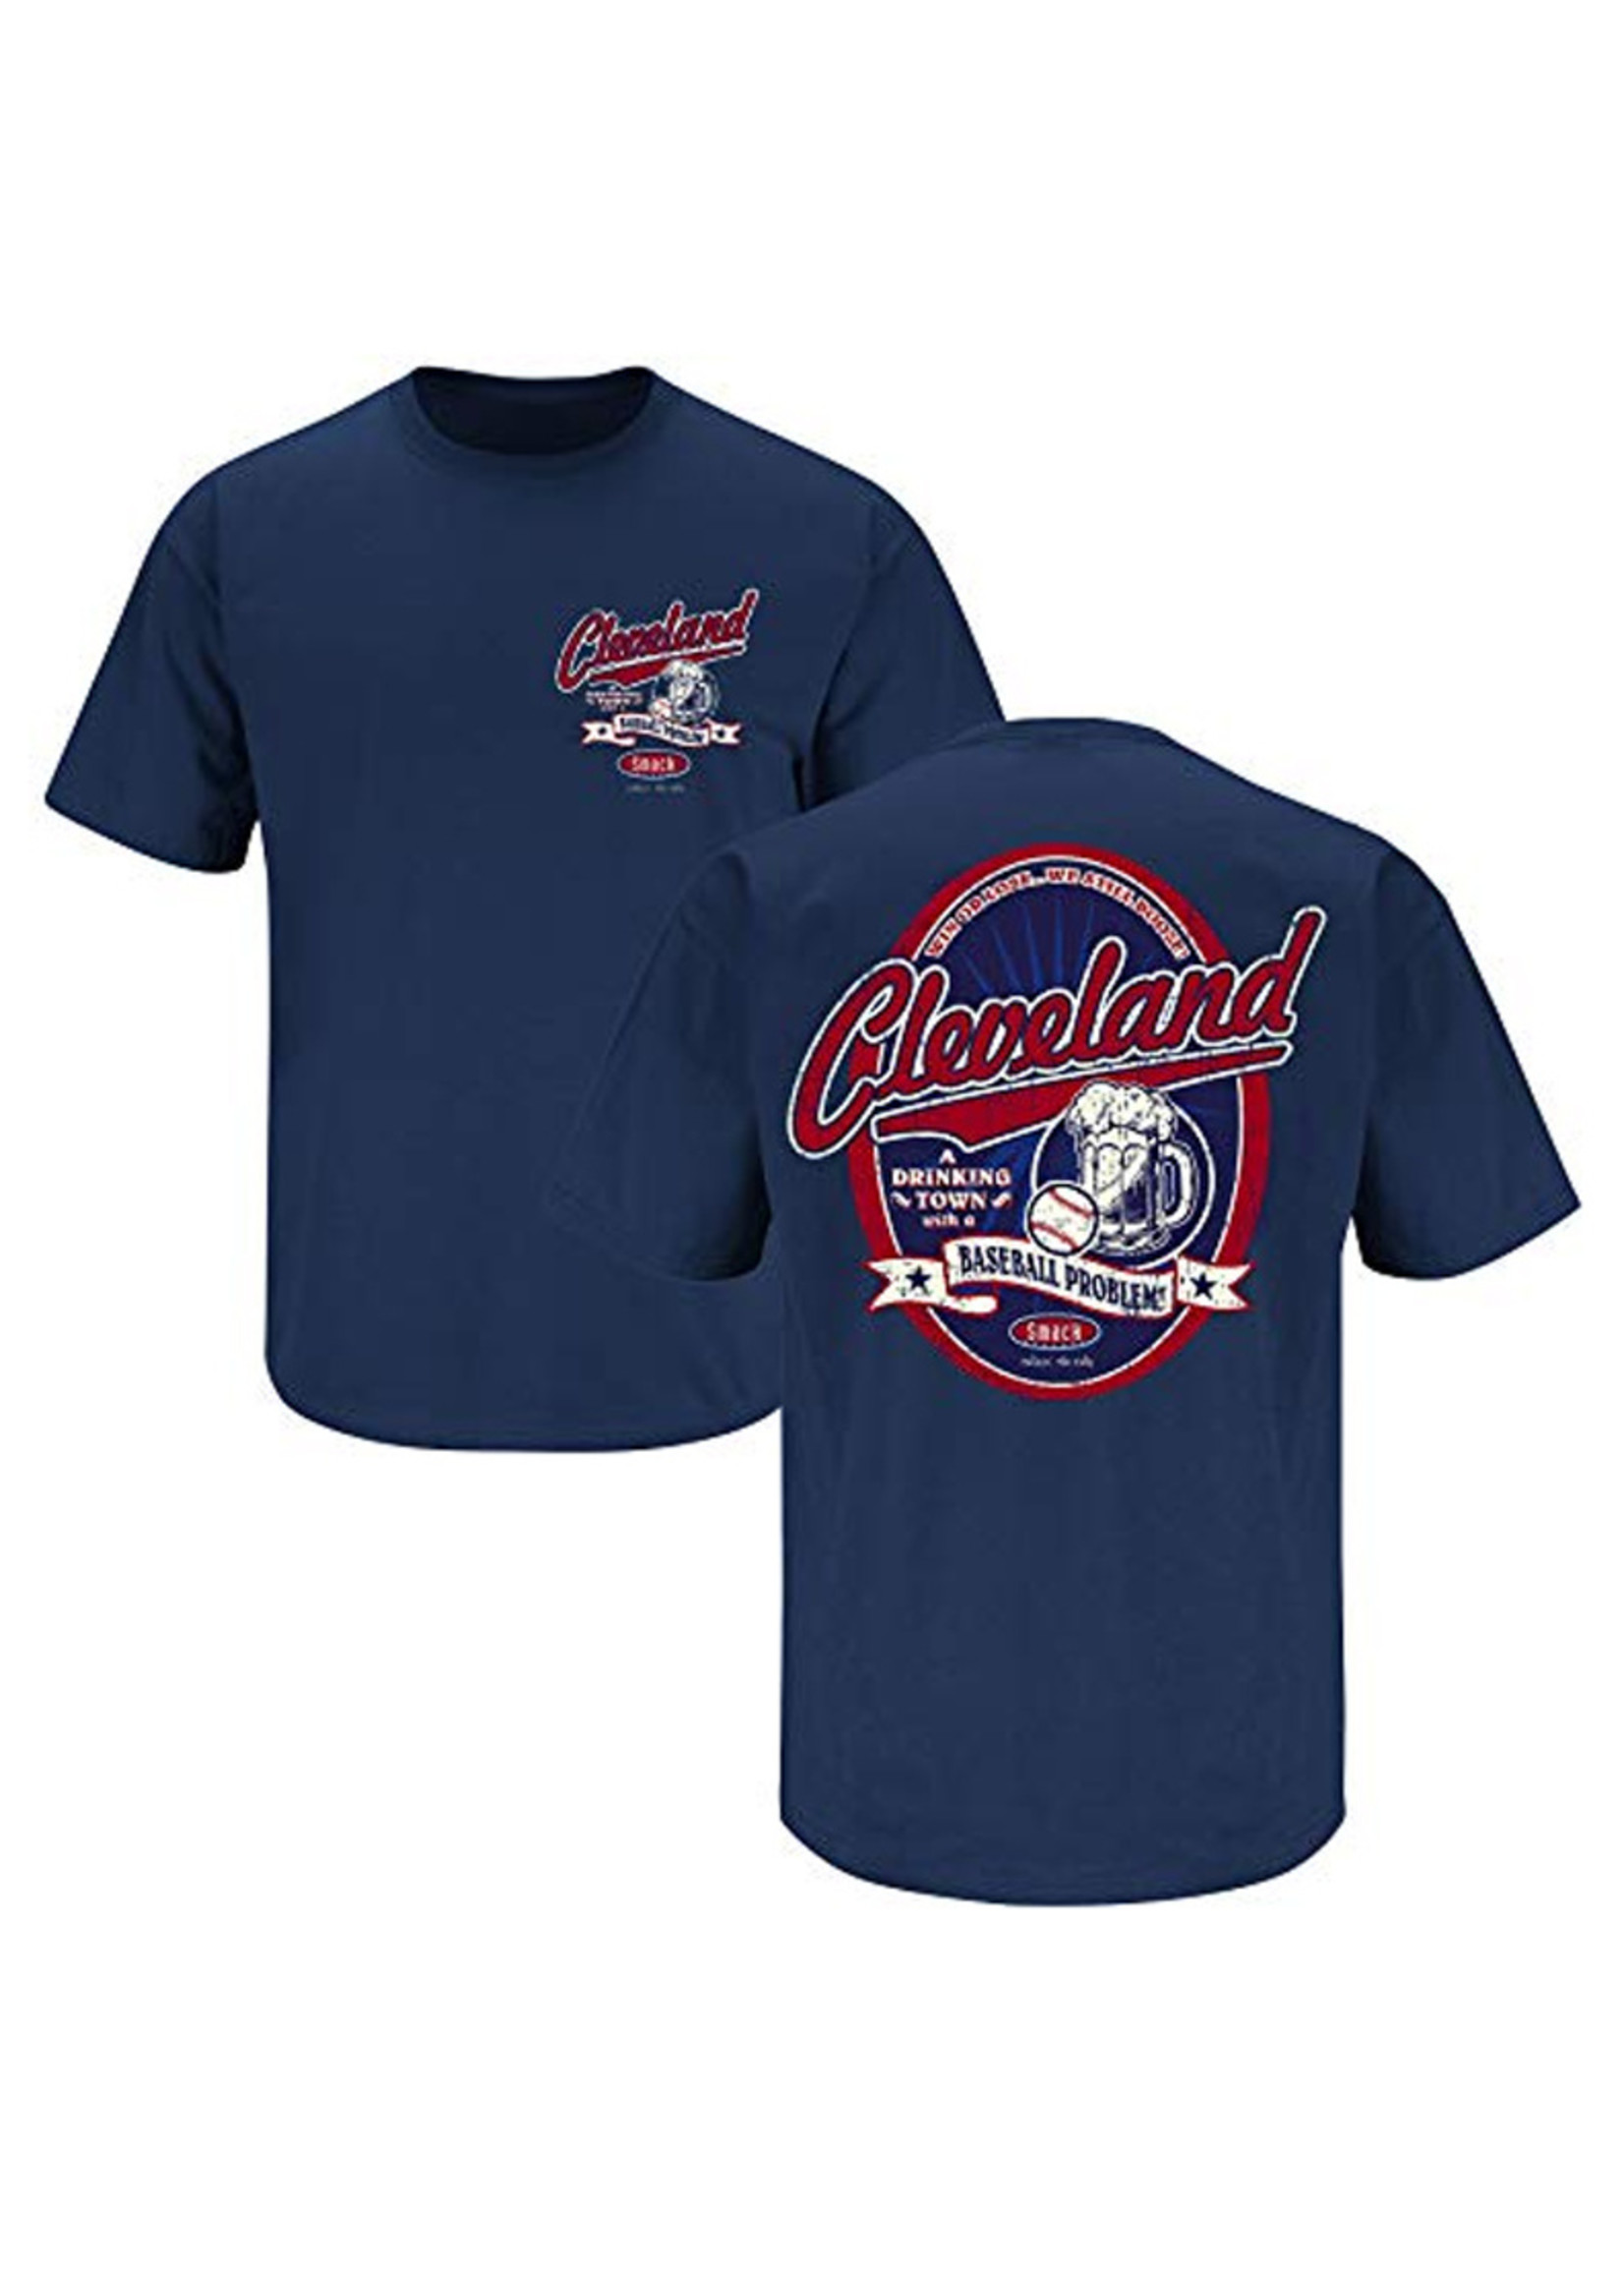 Cleveland a Drinking Town with a Baseball Problem Shirt